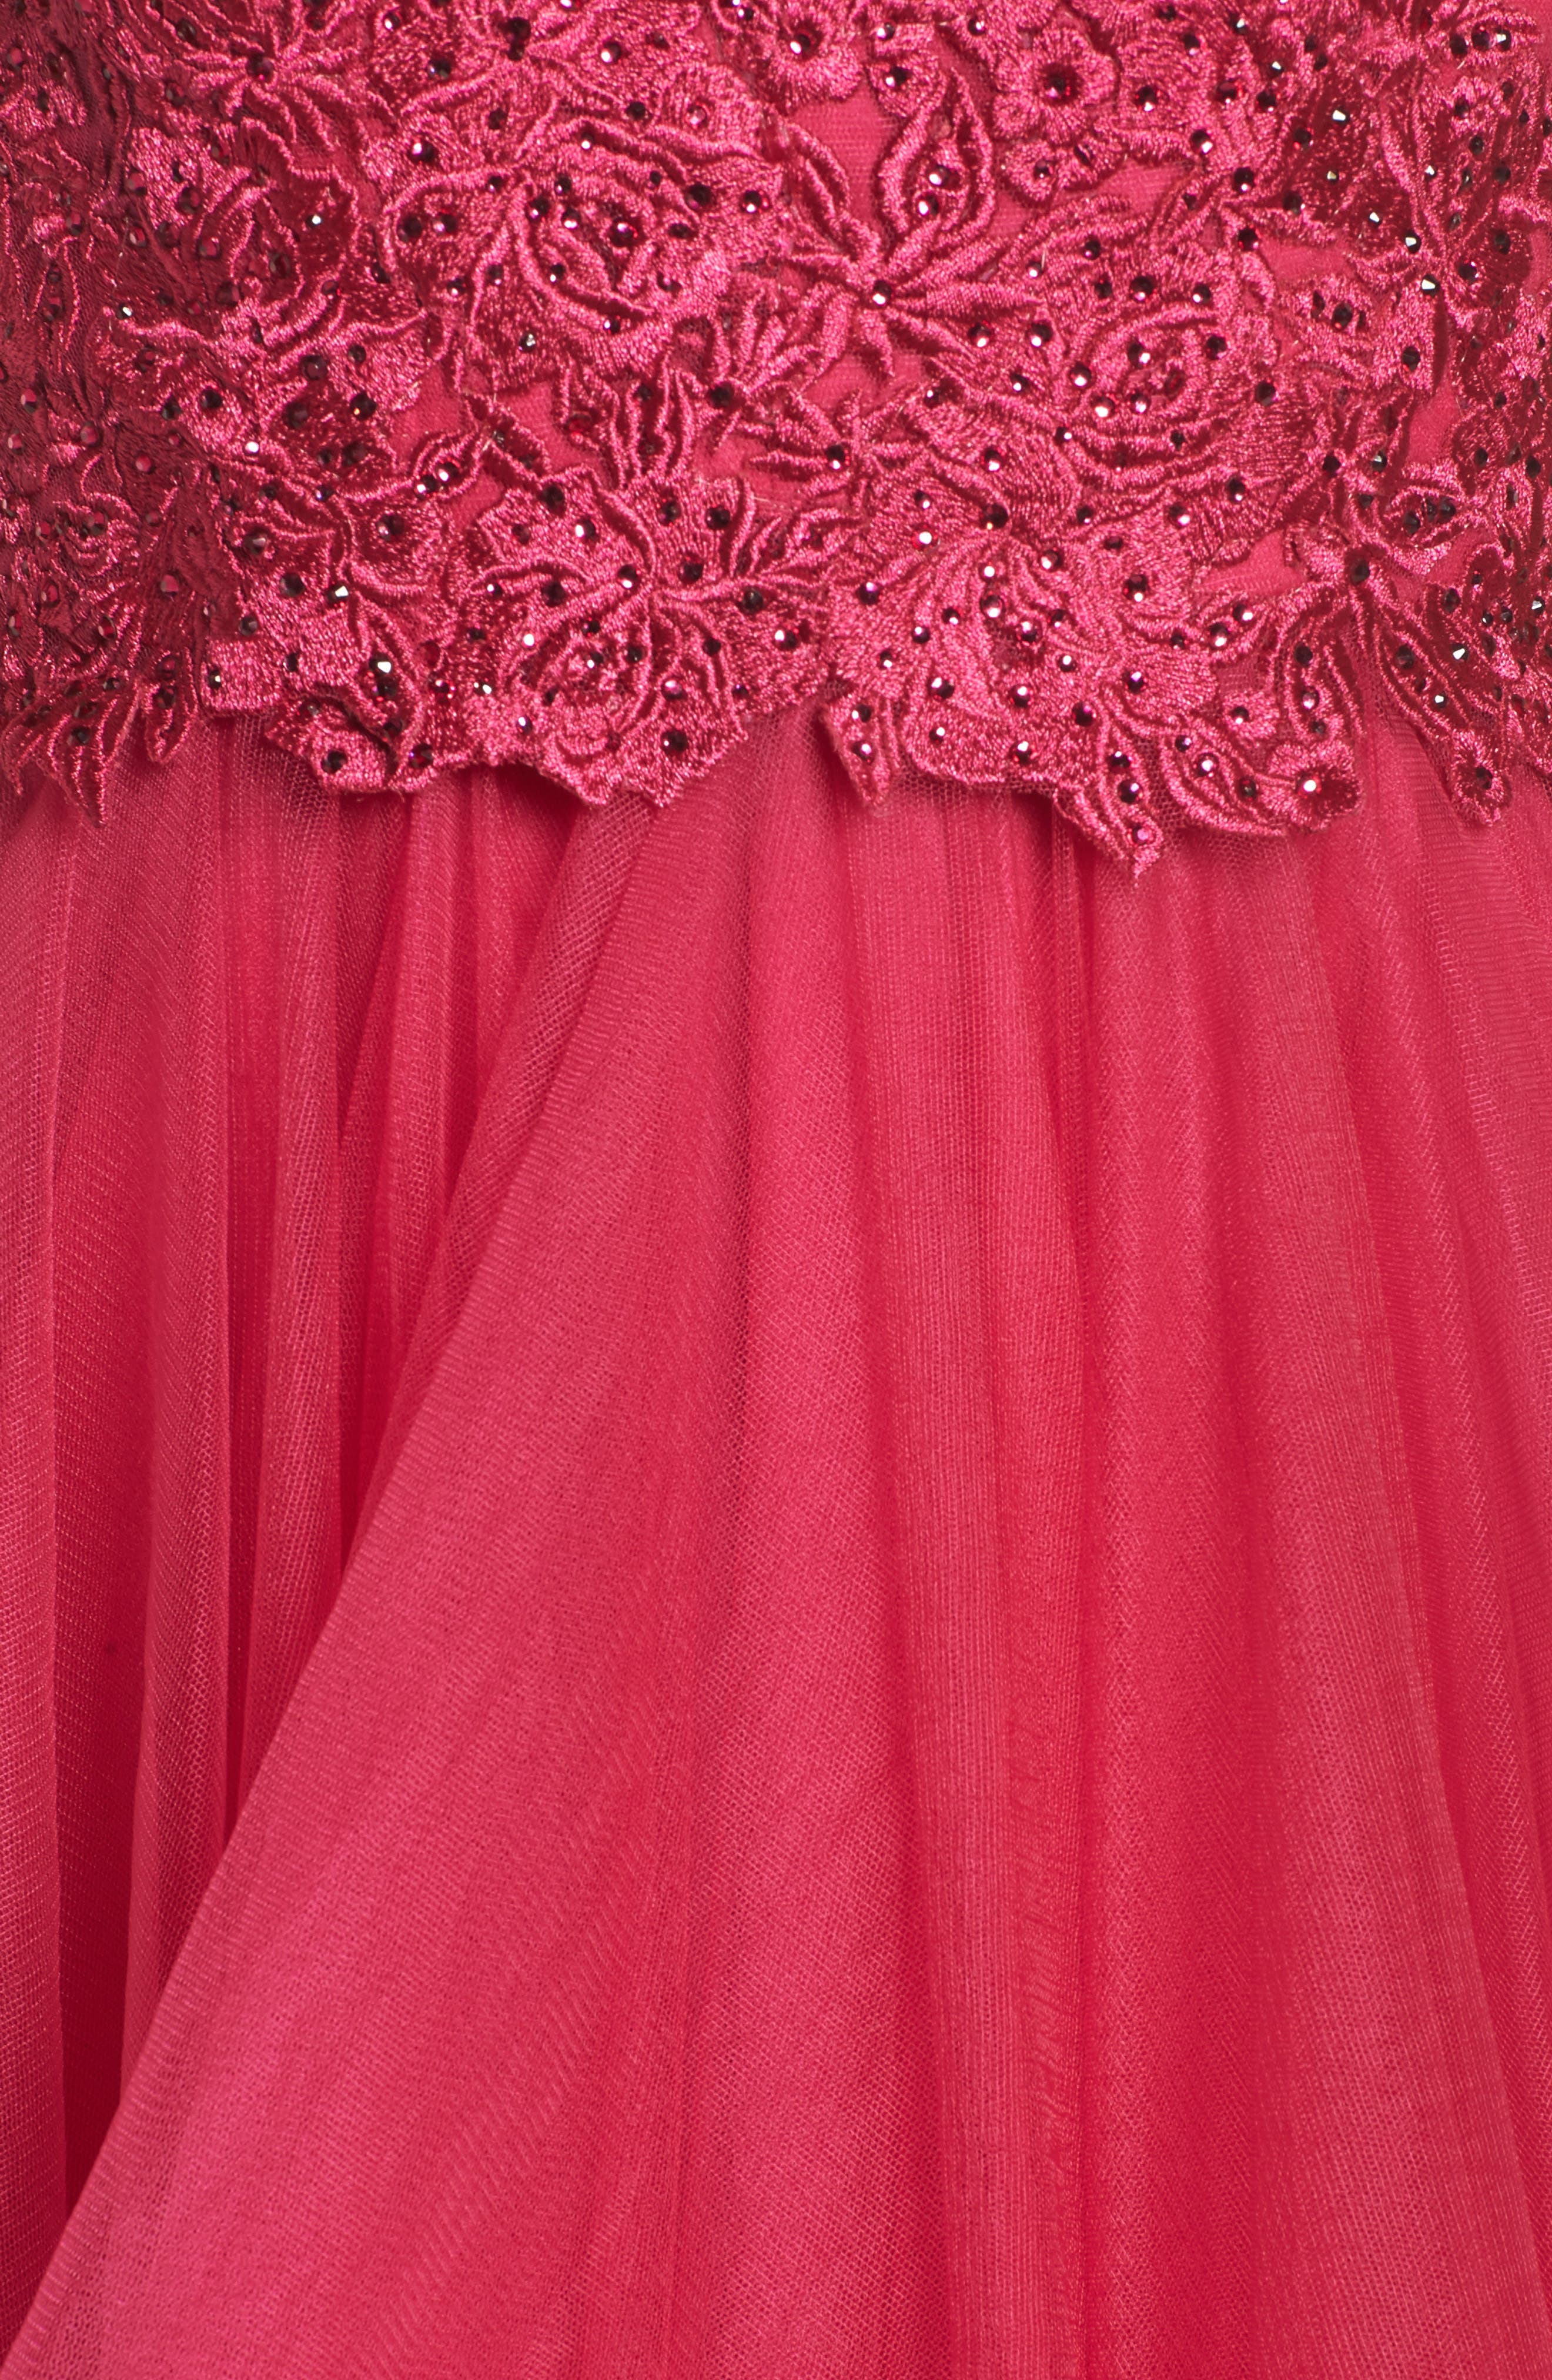 Lace & Tiered Tulle Ballgown,                             Alternate thumbnail 5, color,                             HOT FUCHSIA